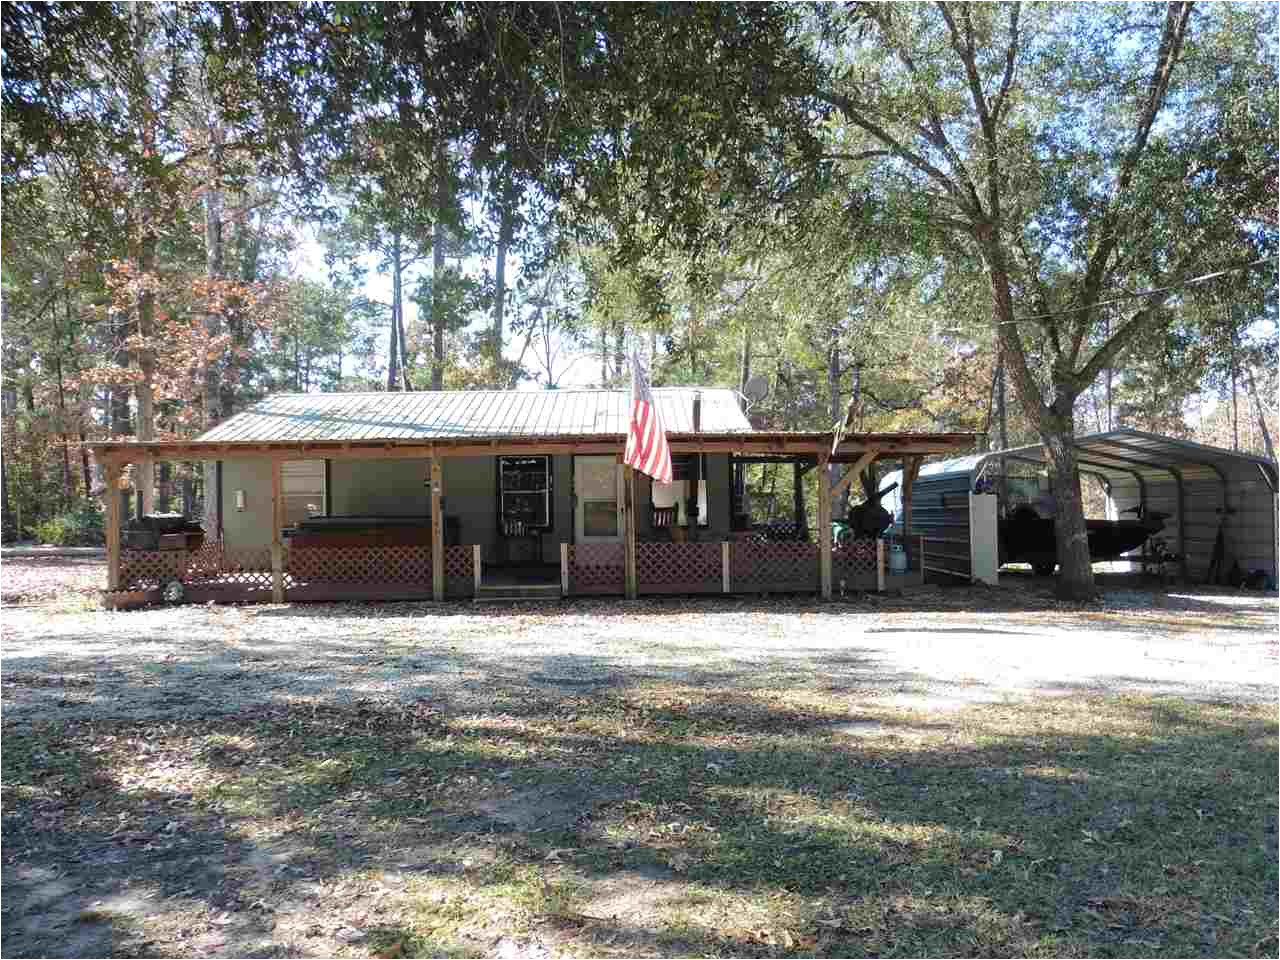 Toledo Bend Waterfront Homes for Sale by Owner Allman Company Listings East Texas Real Estate Allman Company